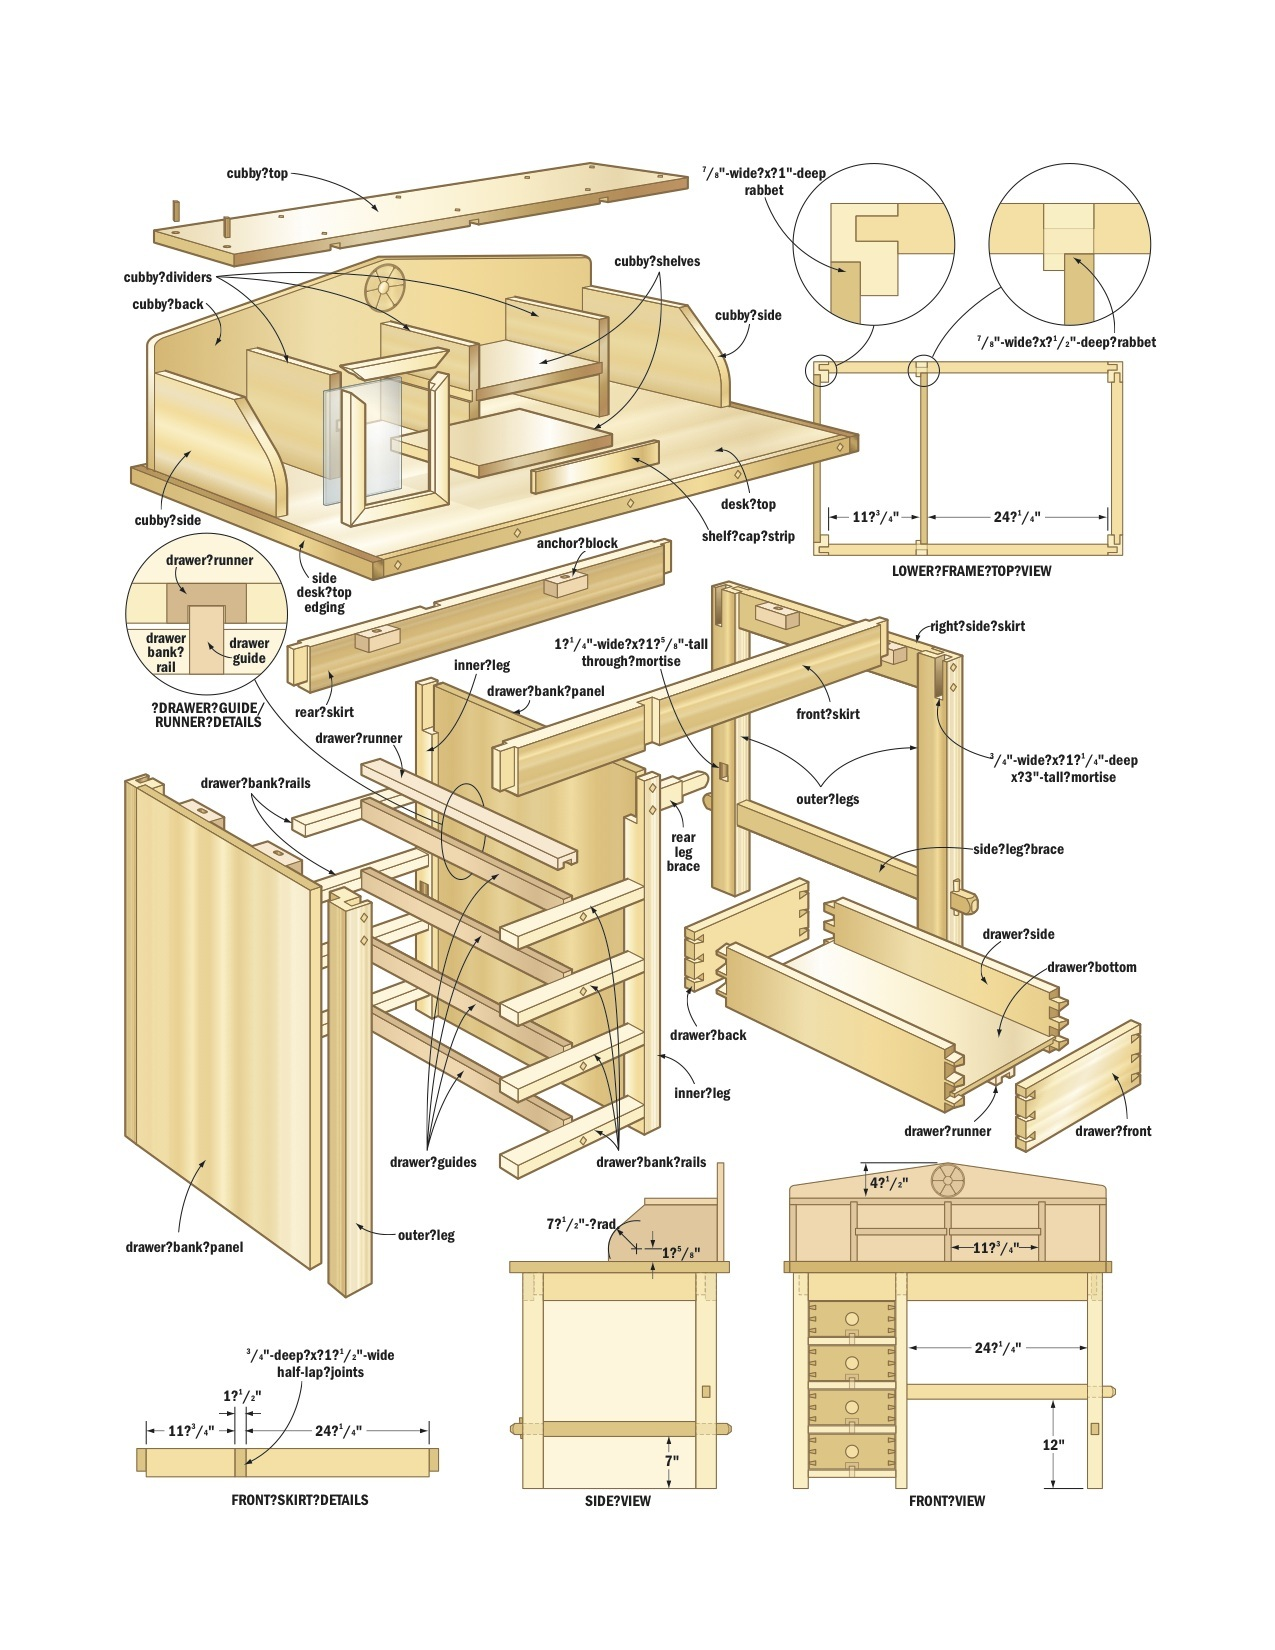 Elegant How To Build A Loft Bed For A Girls Bedroom By Jennifer Allwood Tween Girl Bedroom Ideas  DIY Loft Bed  Loft Bed Directions  DIY Building Plans 1